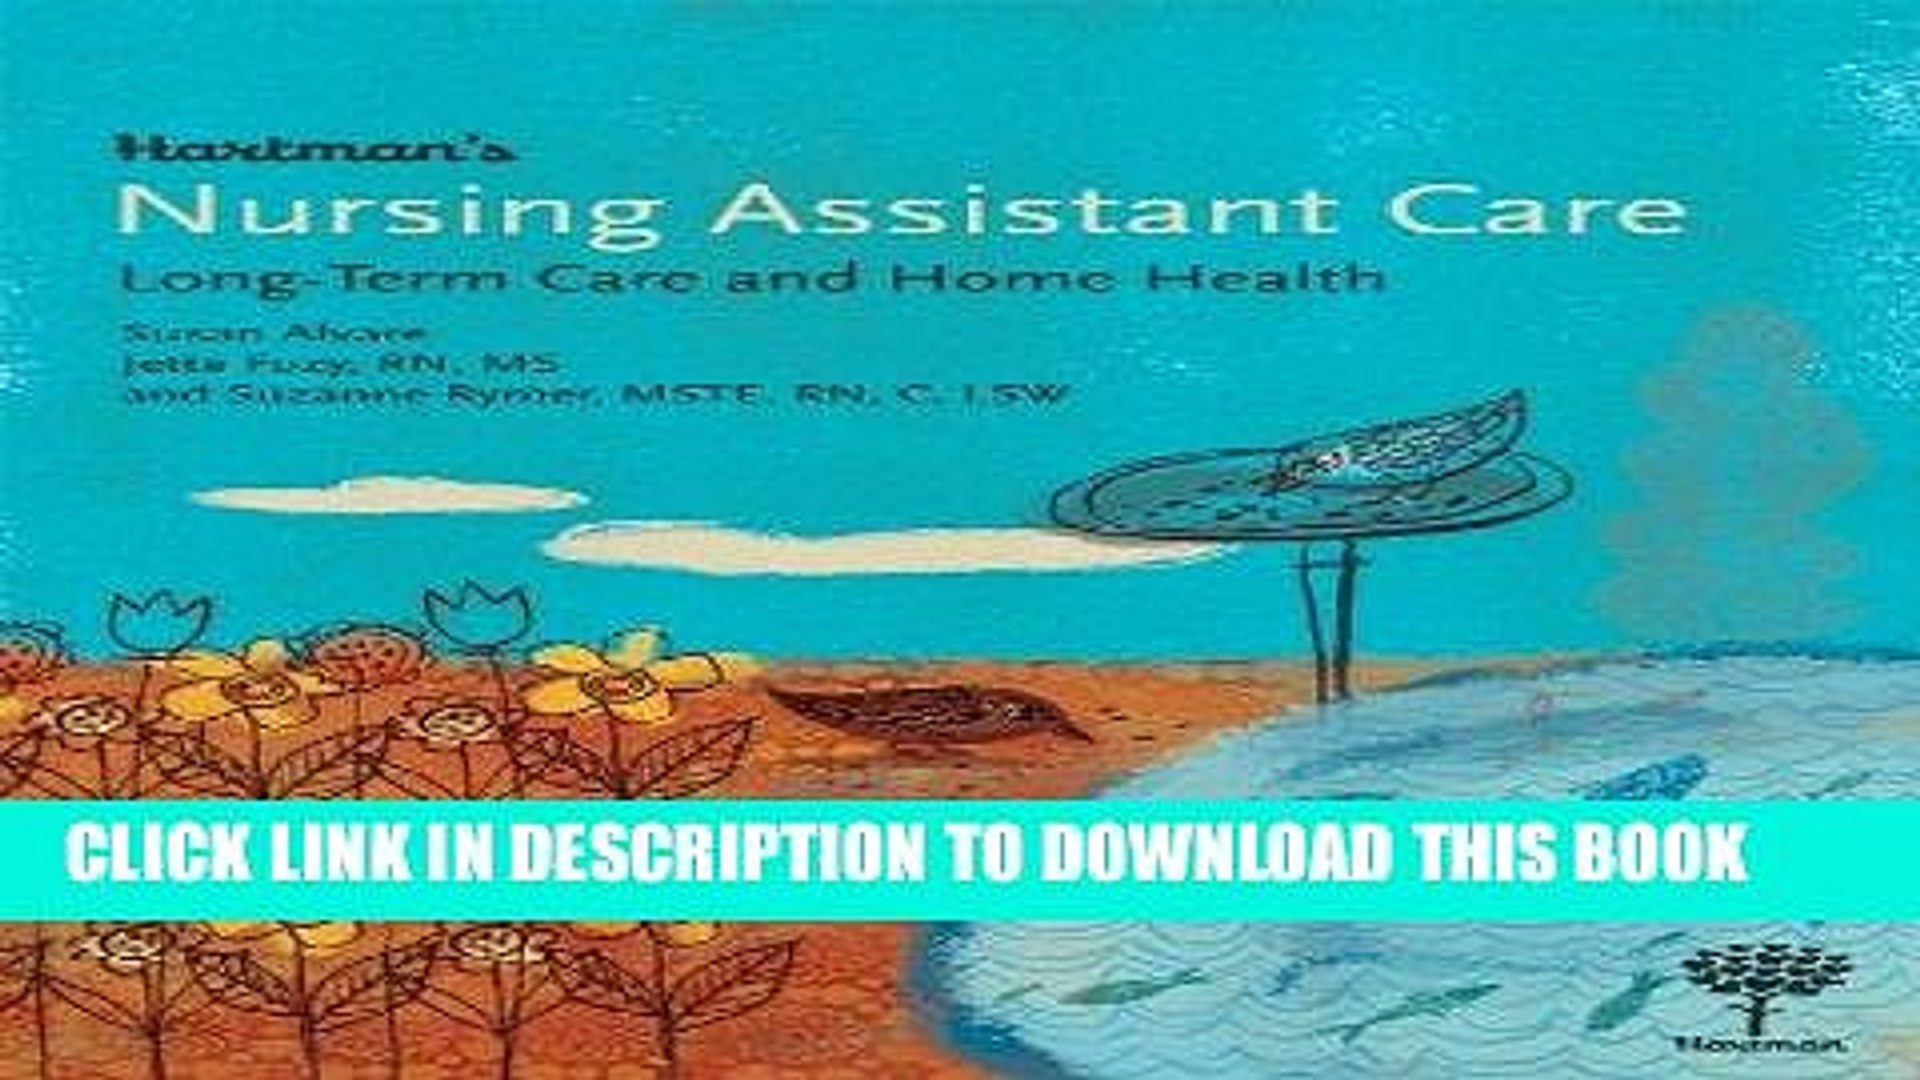 [FREE] EBOOK Hartman s Nursing Assistant Care: Long-Term Care and Home Health ONLINE COLLECTION